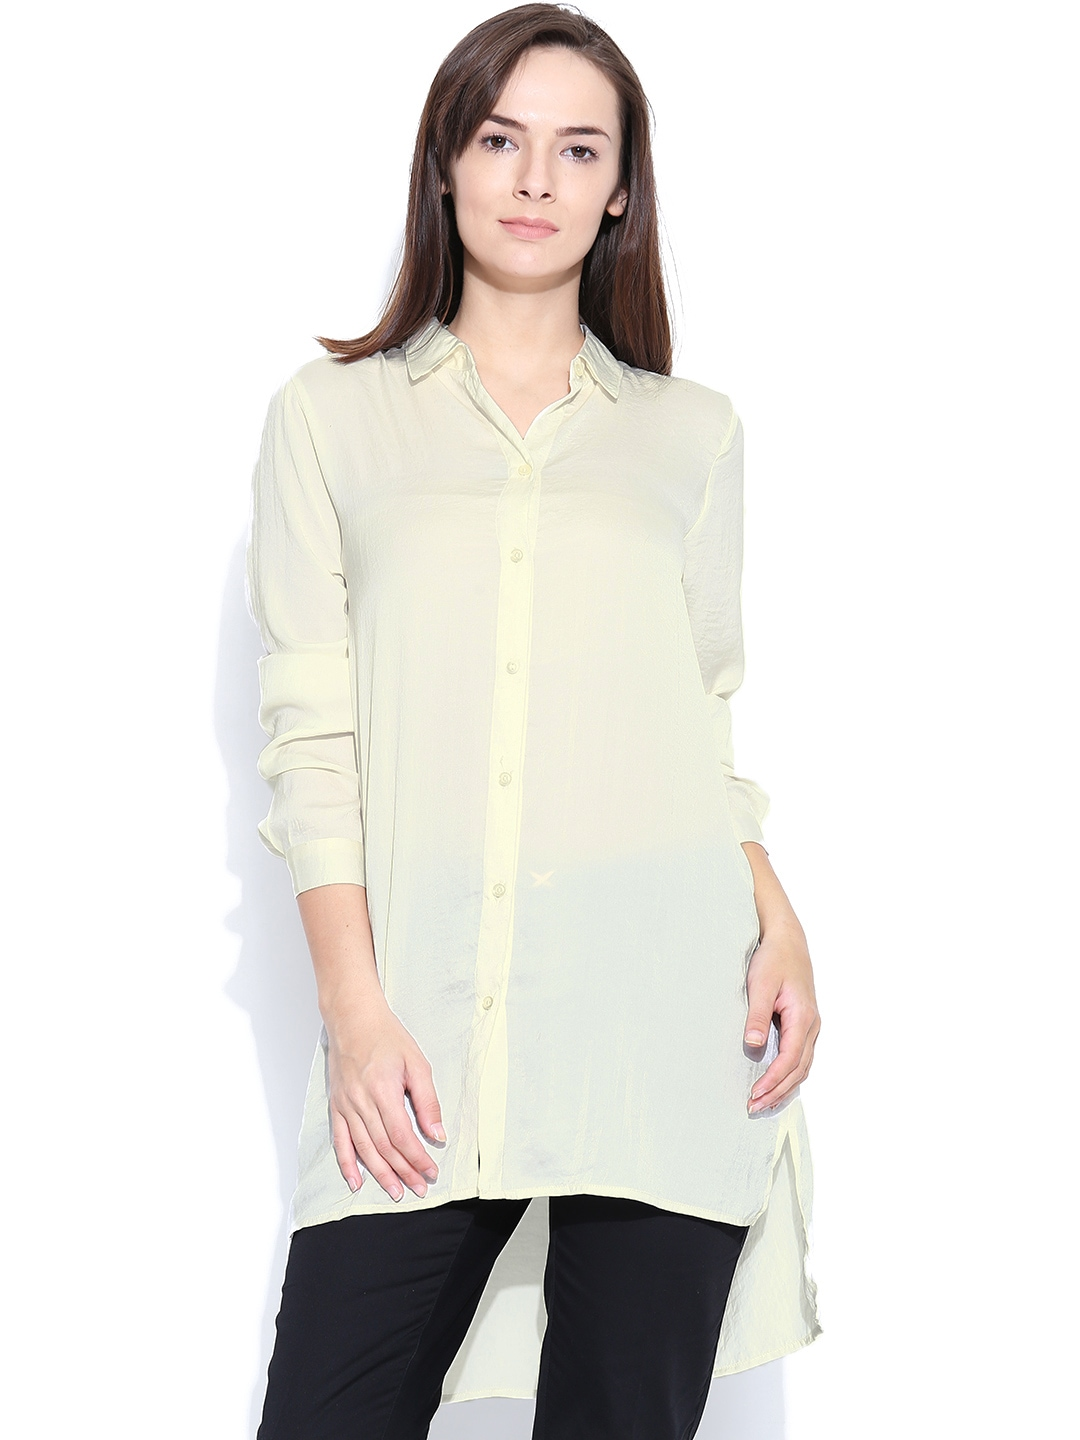 Myntra vero moda off white shirt dress 758709 buy myntra for Buy white dress shirt